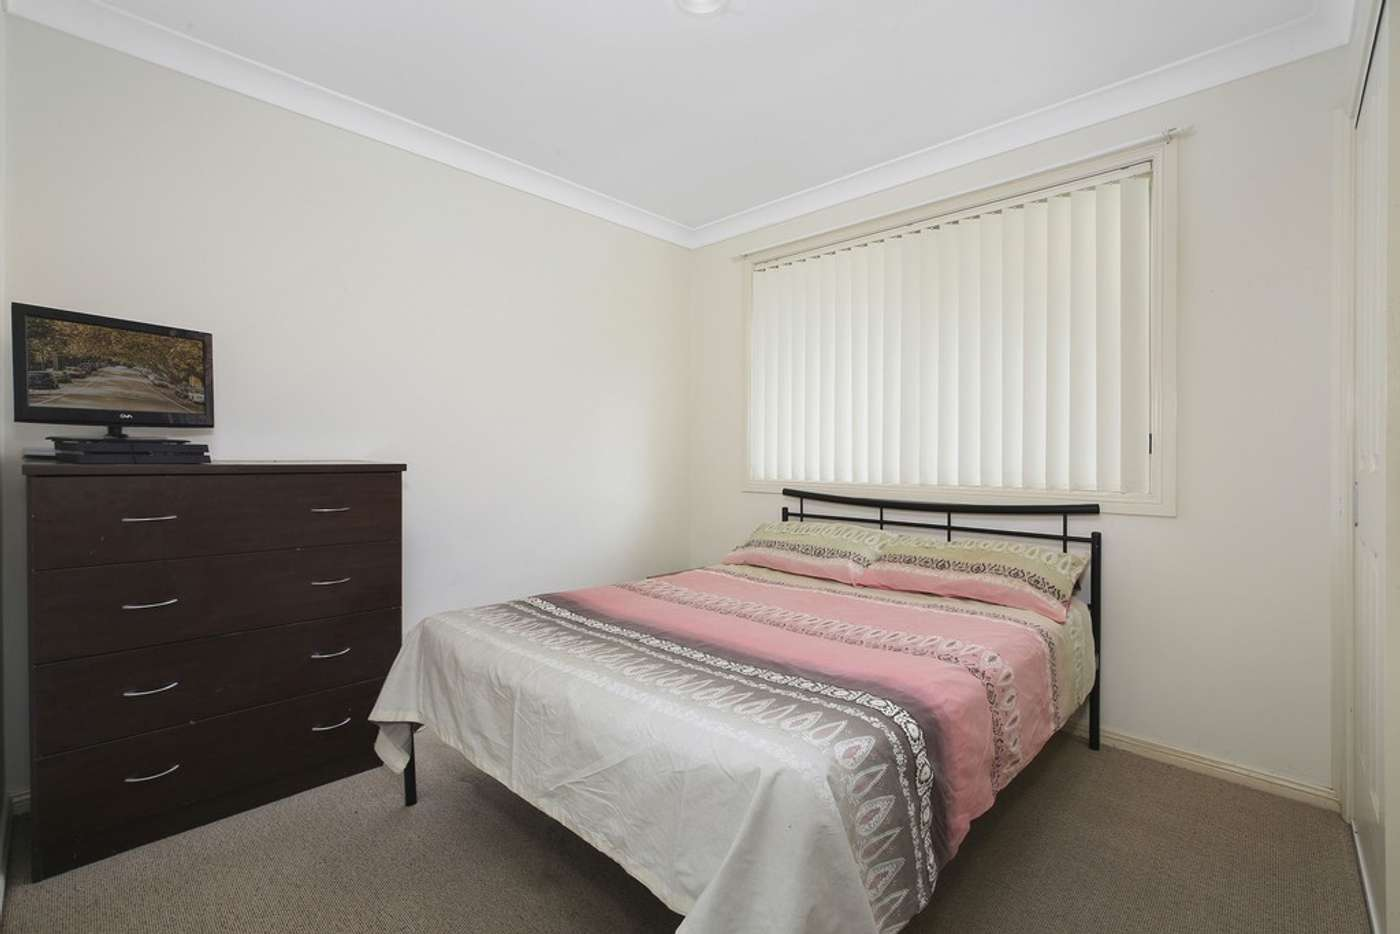 Seventh view of Homely house listing, 9 Rodlee Street, Wauchope NSW 2446